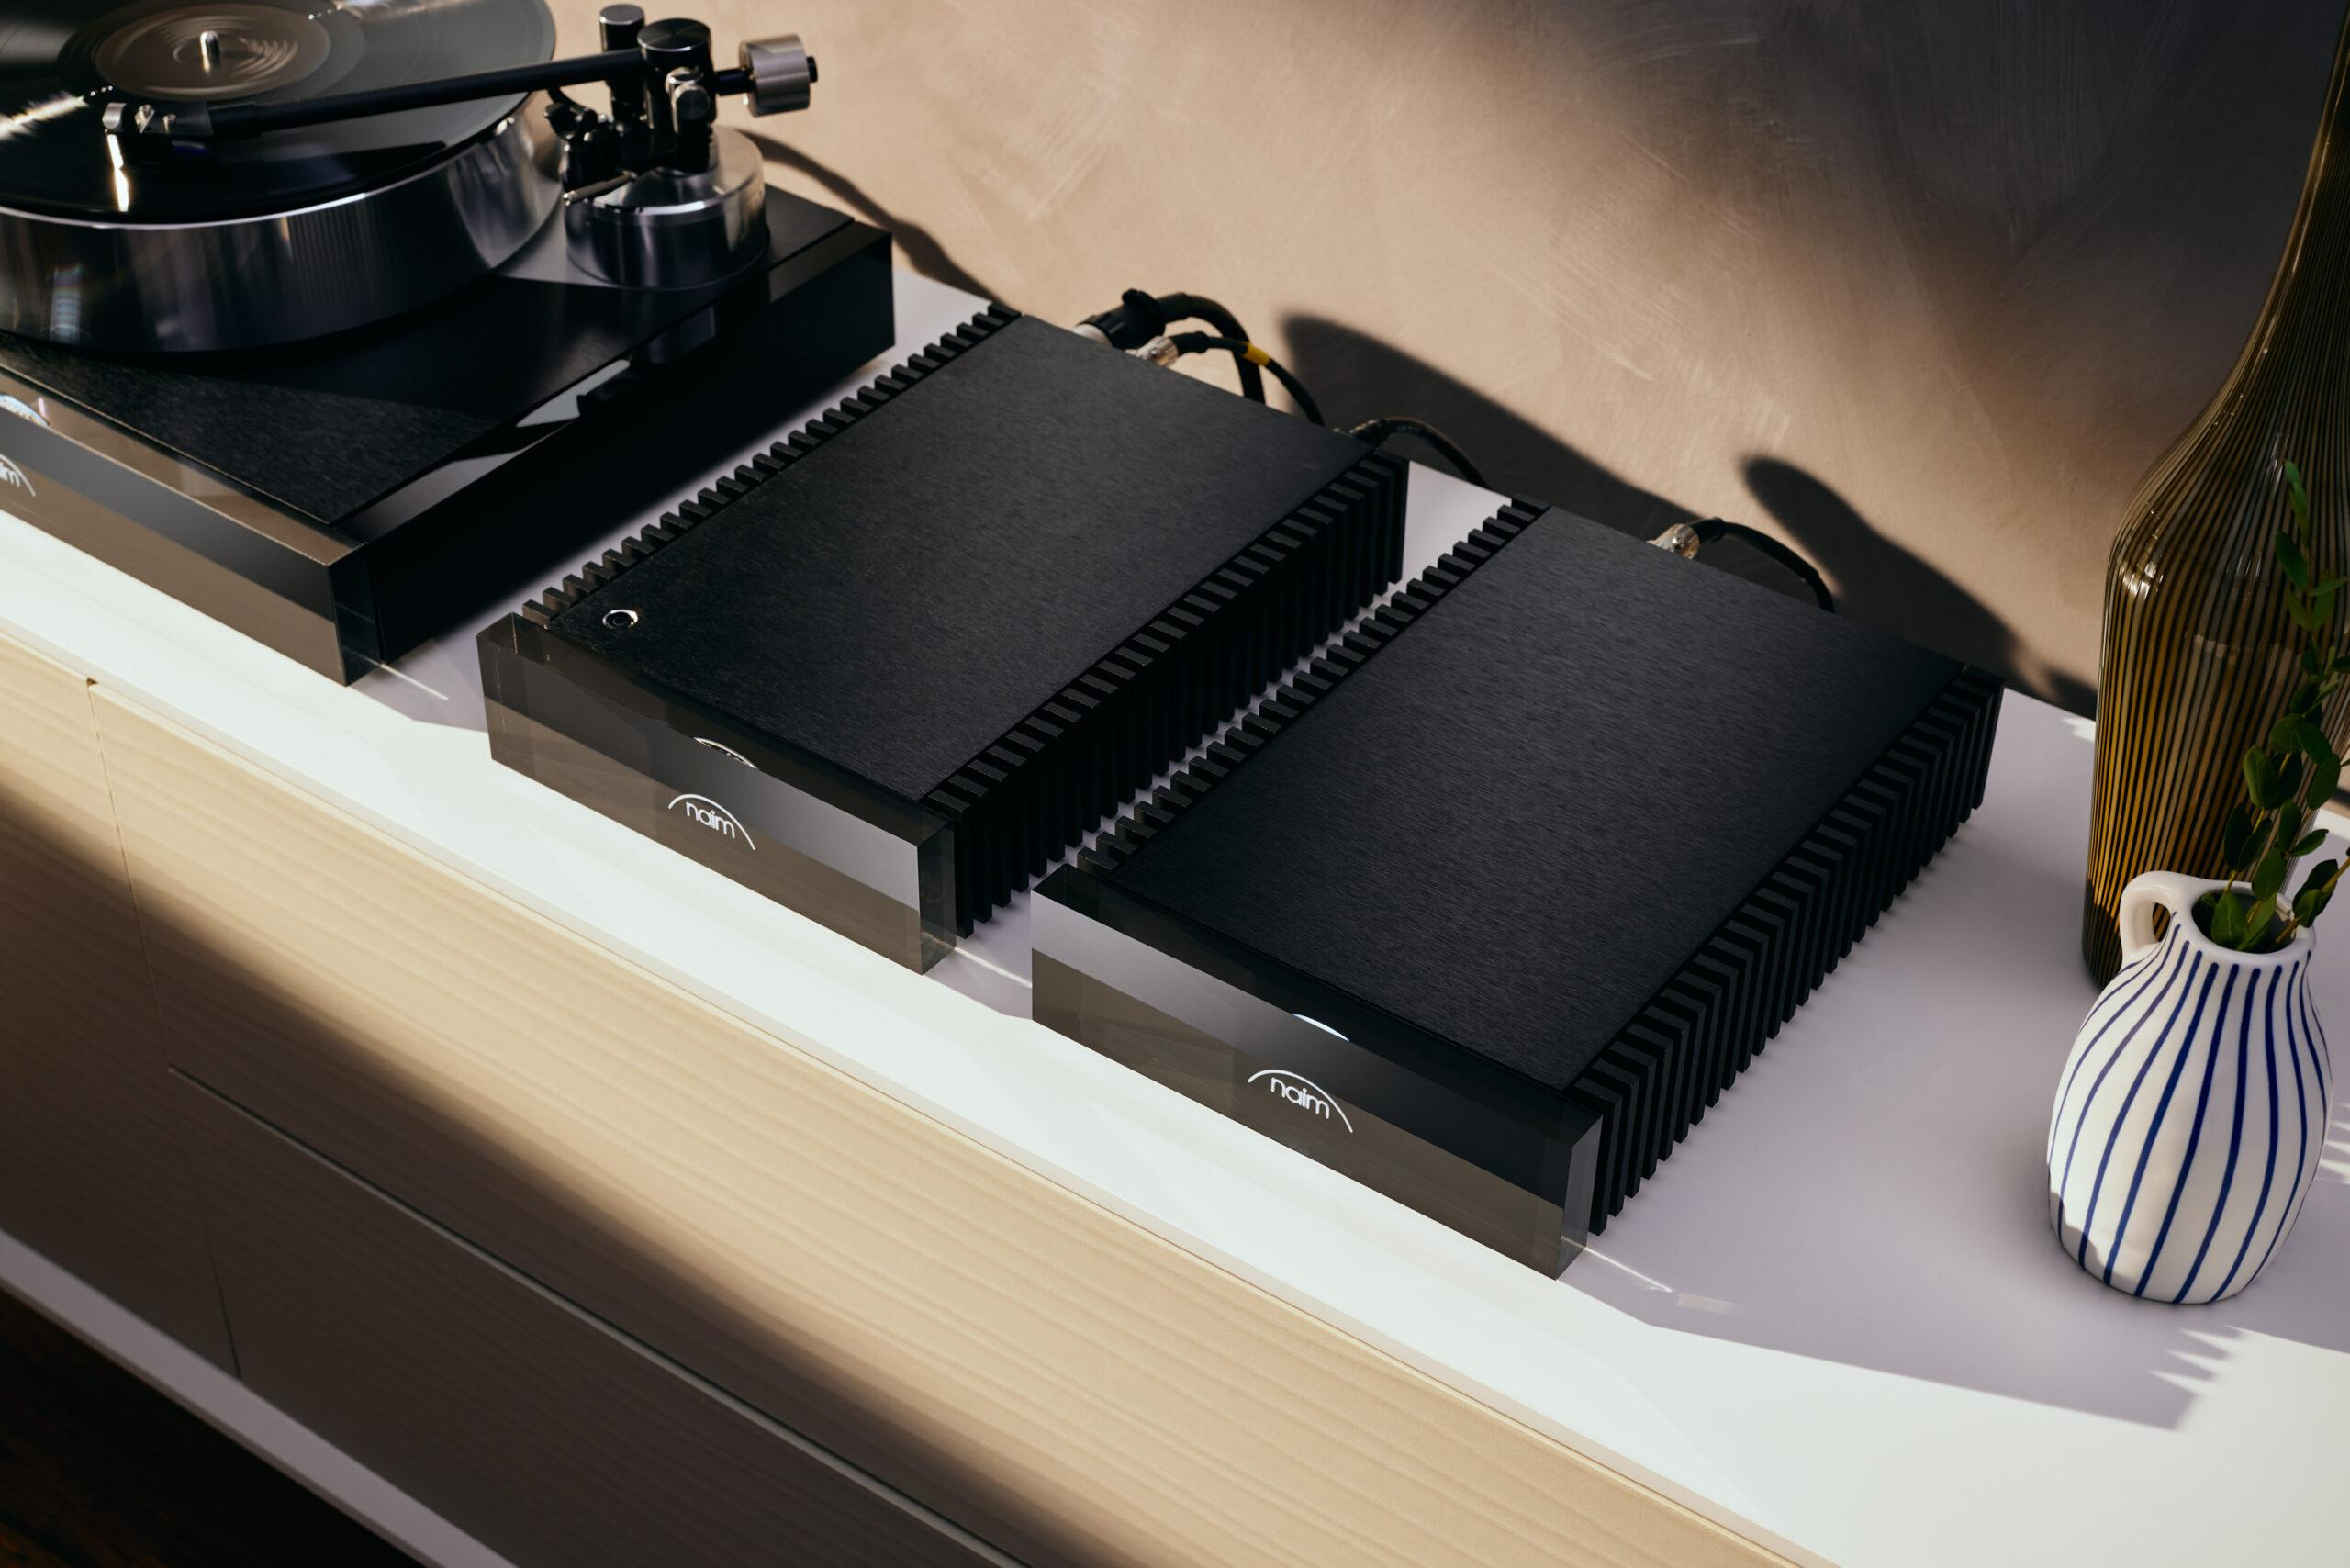 Vinyl-lovers can now finally enjoy the full Naim Audio experience with the launch of Solstice, the first turntable in the British brand's almost 50-year history.